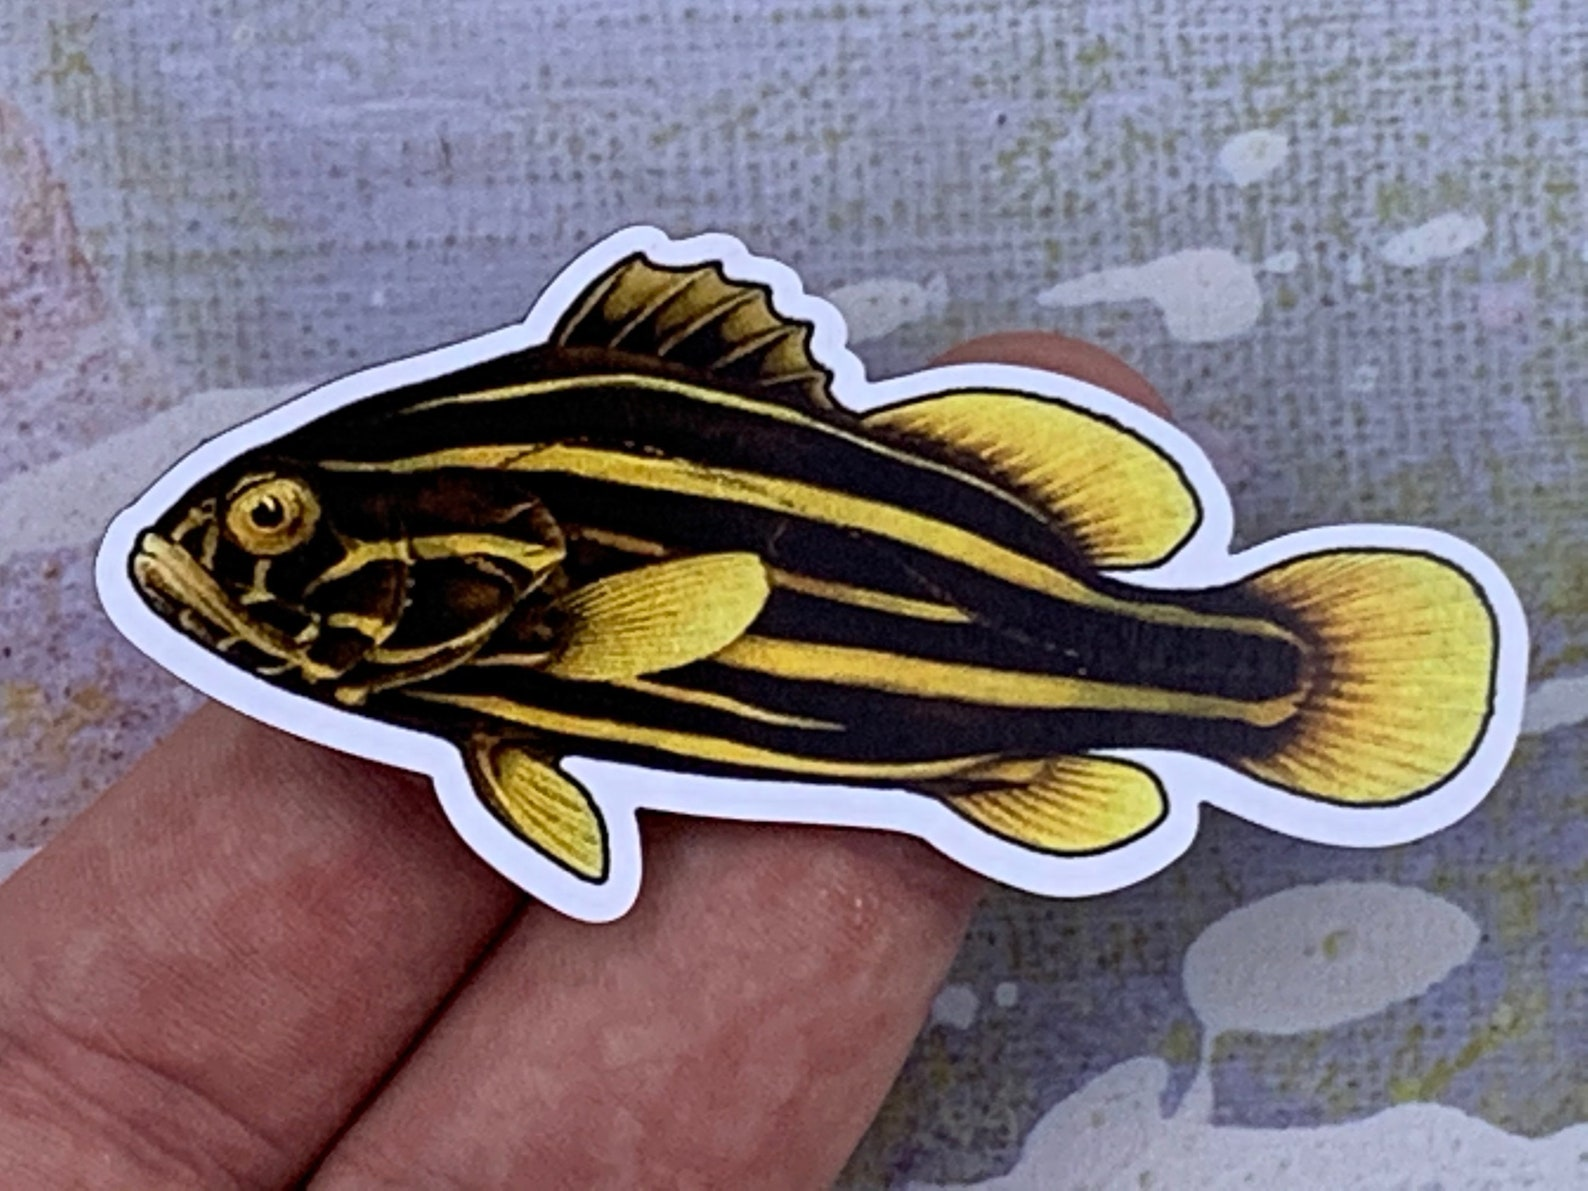 Photo of a goldenstriped soapfish magnet in someone's hand